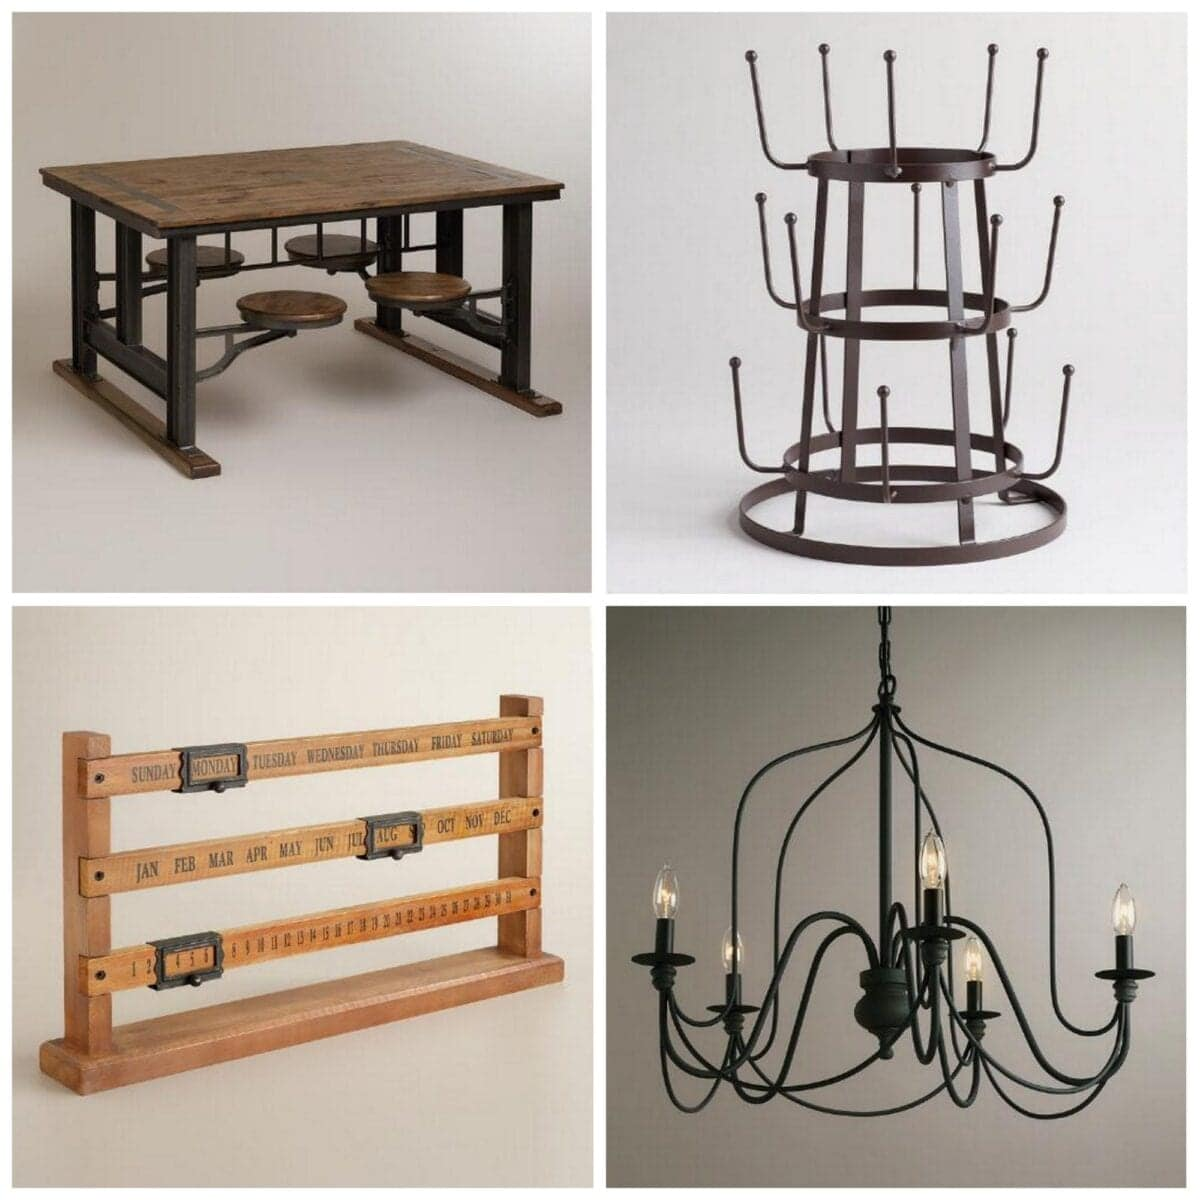 Where To Buy Affordable Industrial Farmhouse Decor Blesser House - World market industrial table